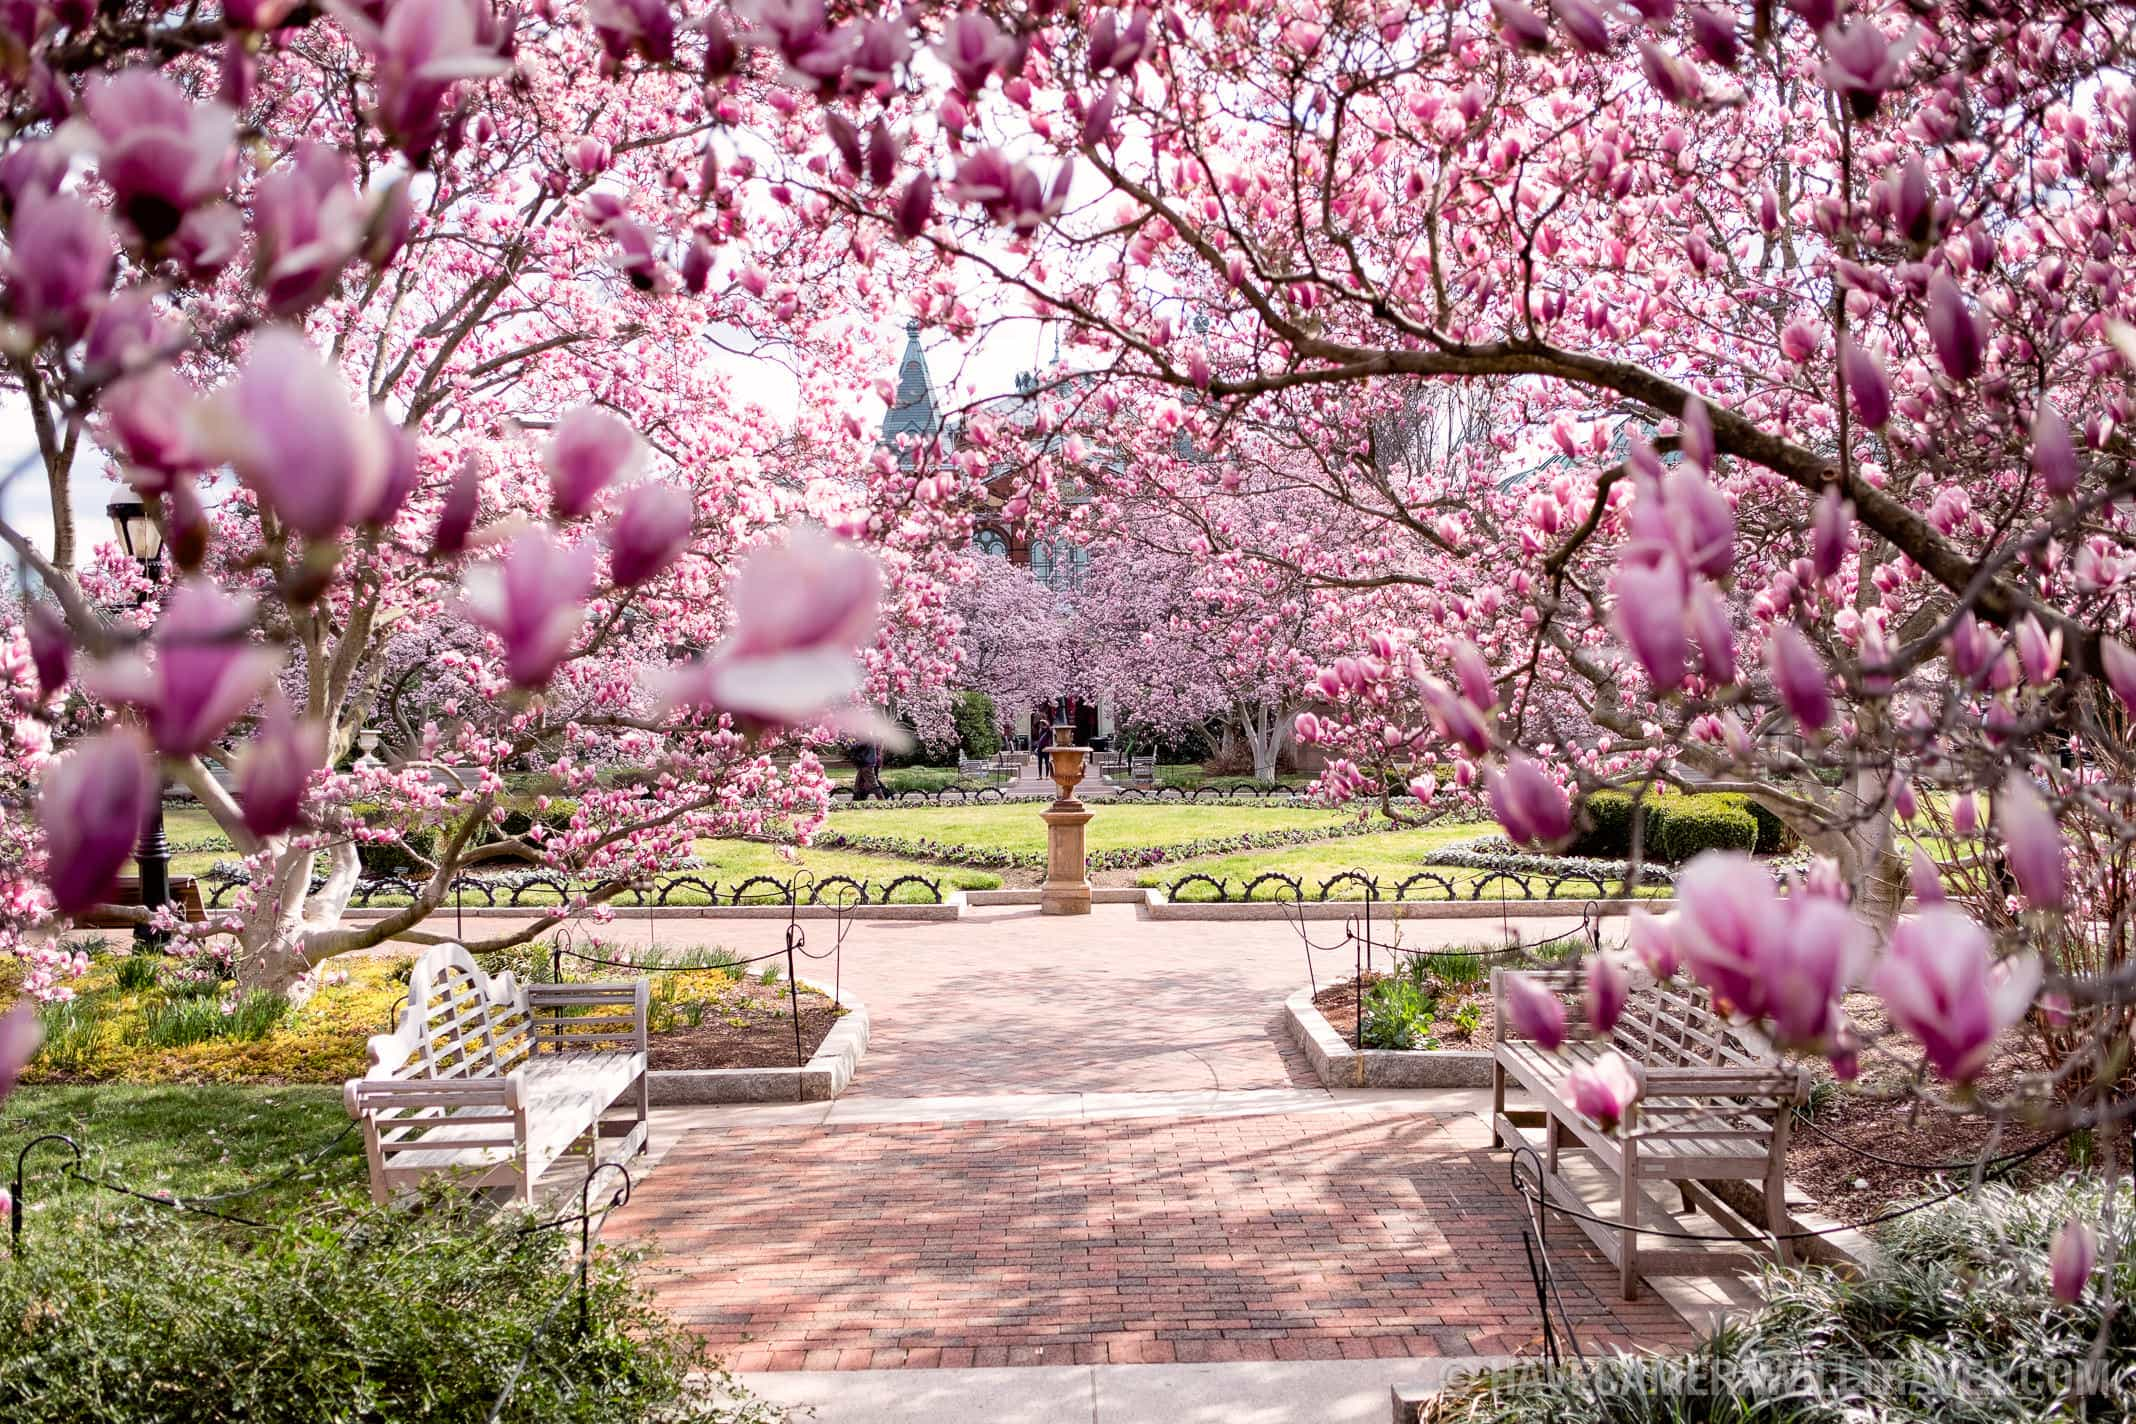 Saucer Magnolias in bloom at the Enid A. Haupt Garden